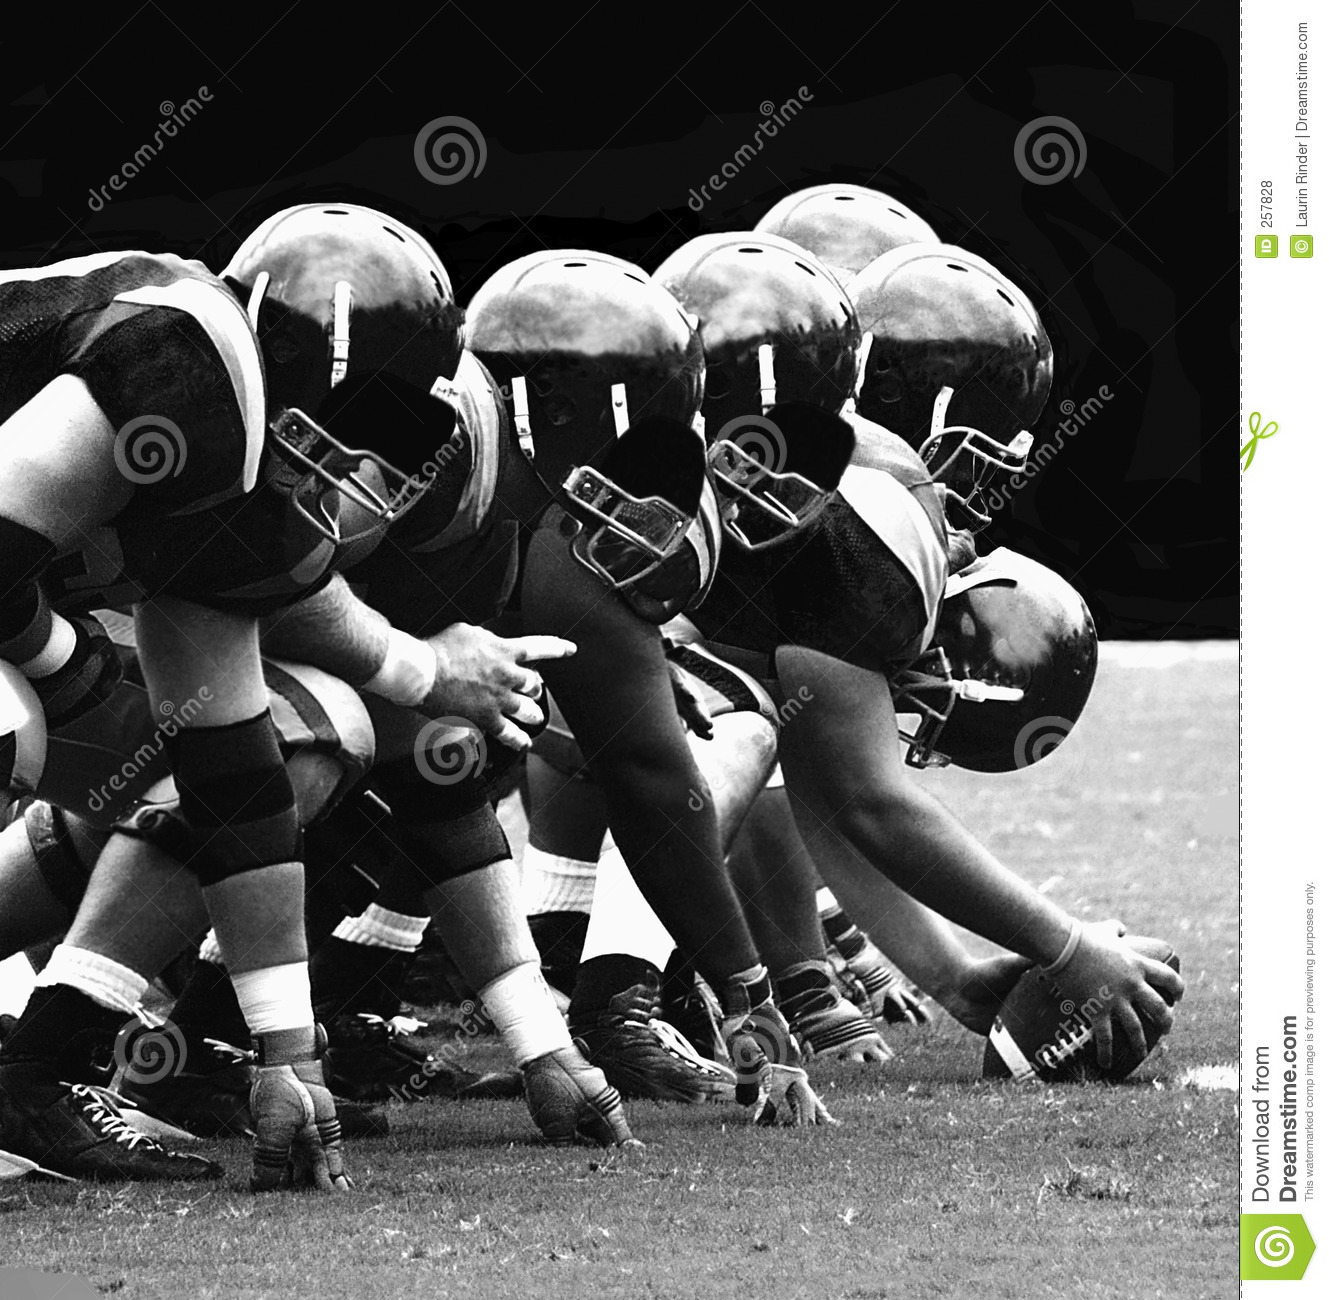 Royalty Free Stock Photos American Football Image257828 as well Muscle Man US 4 further I00000FuTrN5qTfk furthermore Cardiology Wallpaper likewise . on power line photography